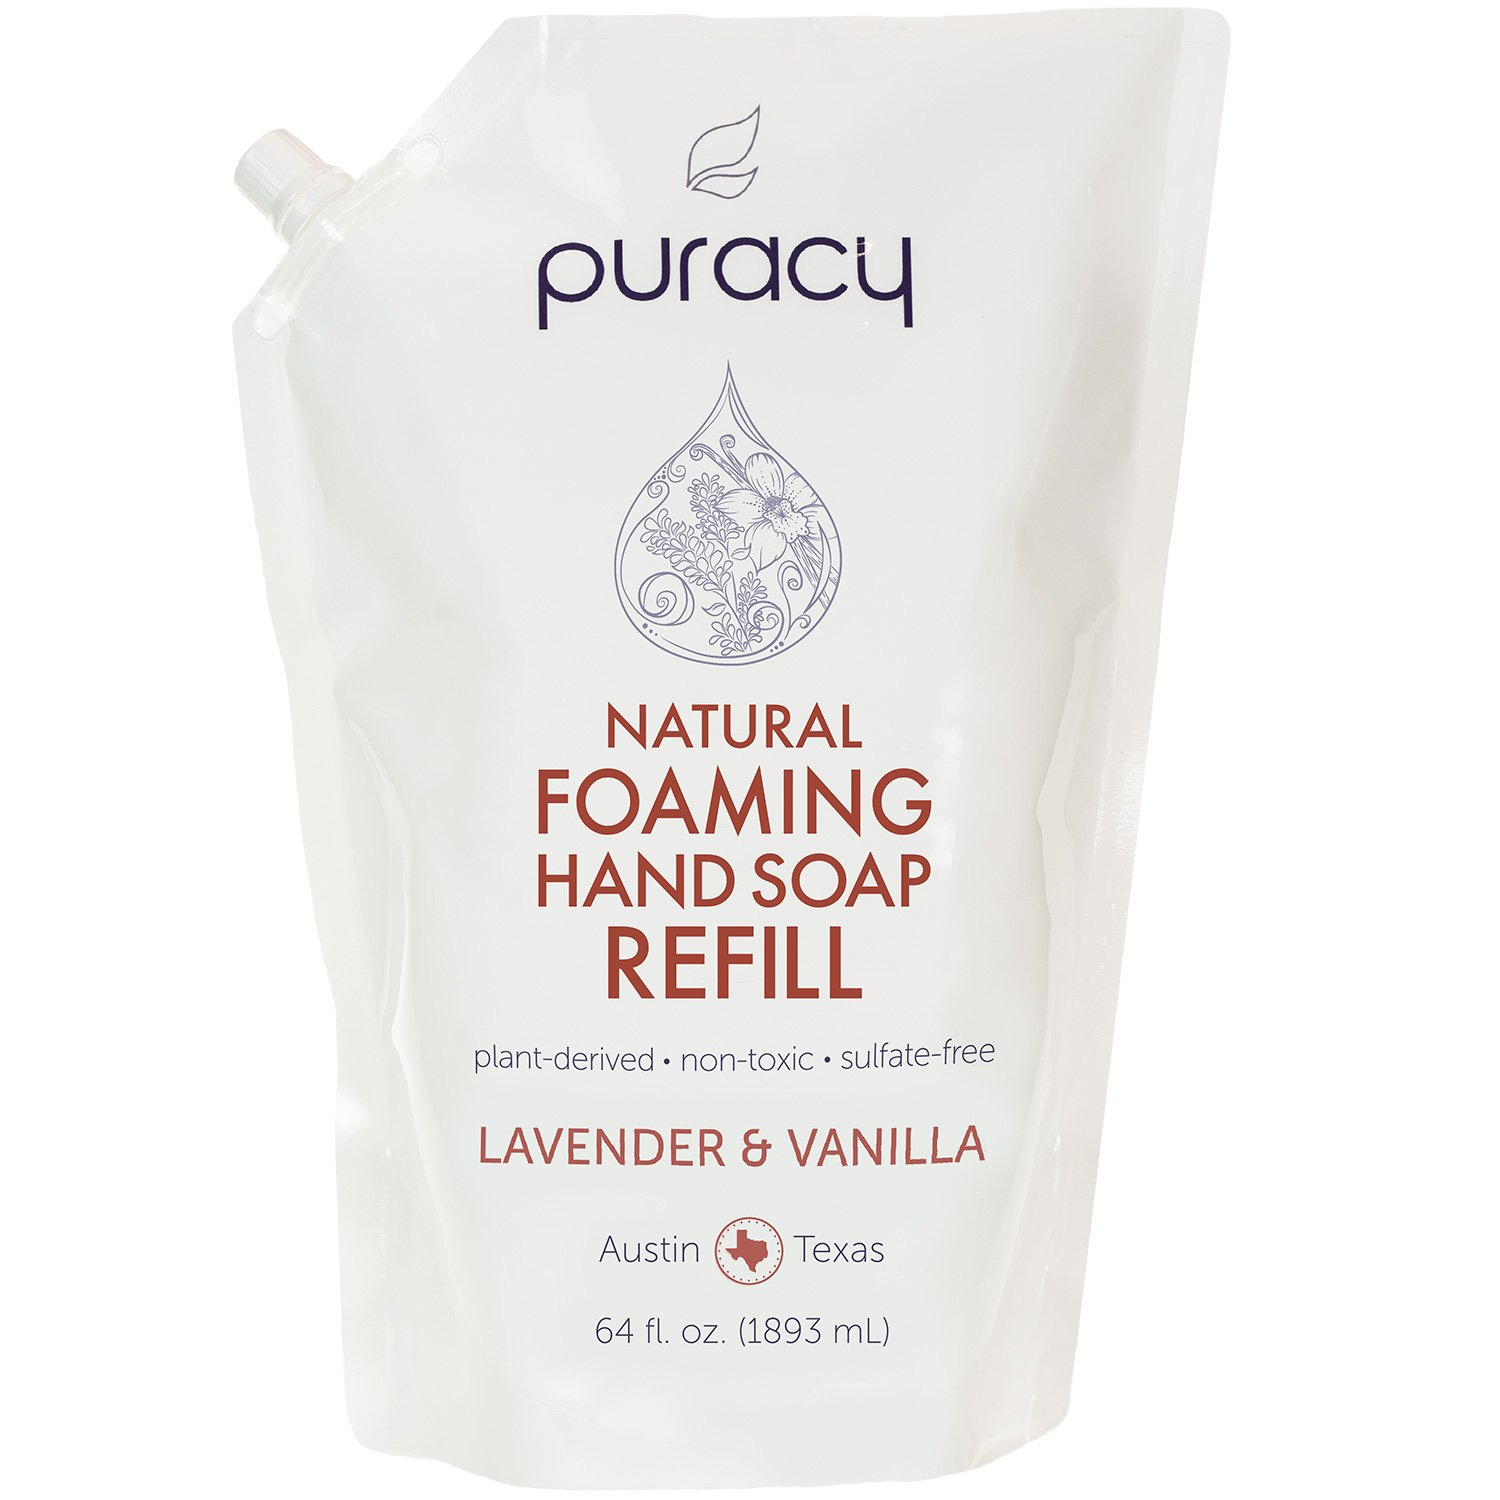 Puracy Natural Foaming Hand Soap Refill, Sulfate-Free Moisturizing Hand Wash, Lavender and Vanilla, 64 Fluid Ounce